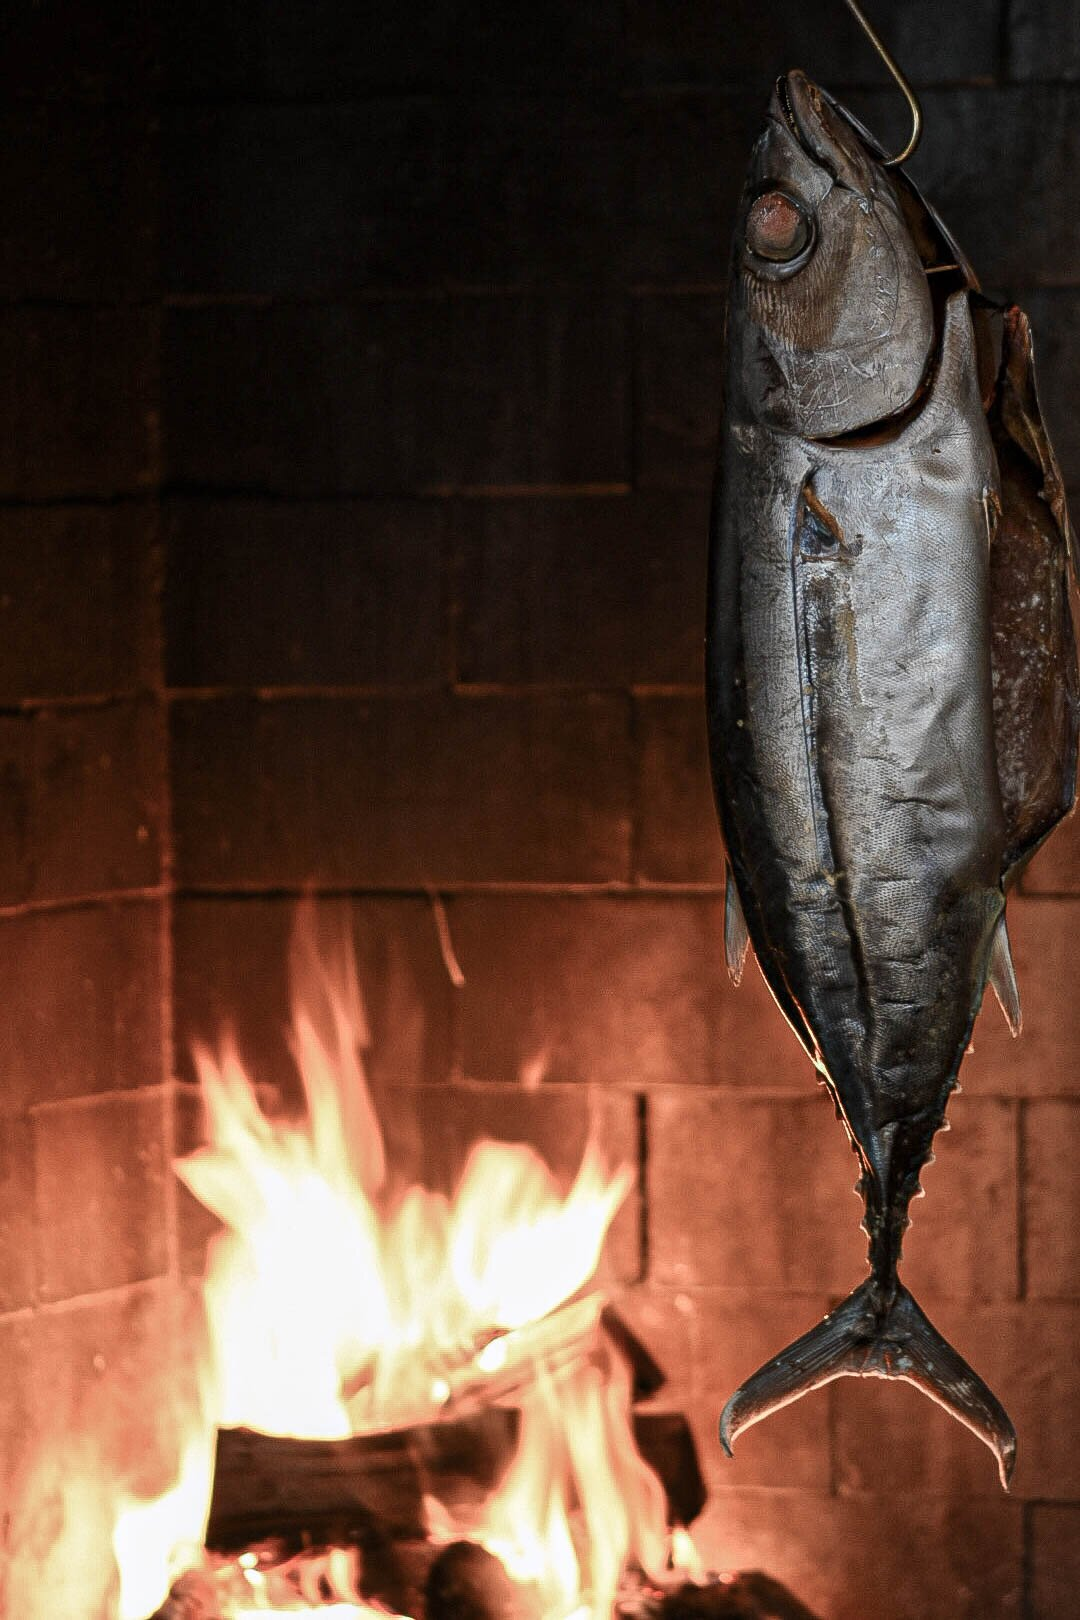 Whole Fish cooking over an open fire at Pasture